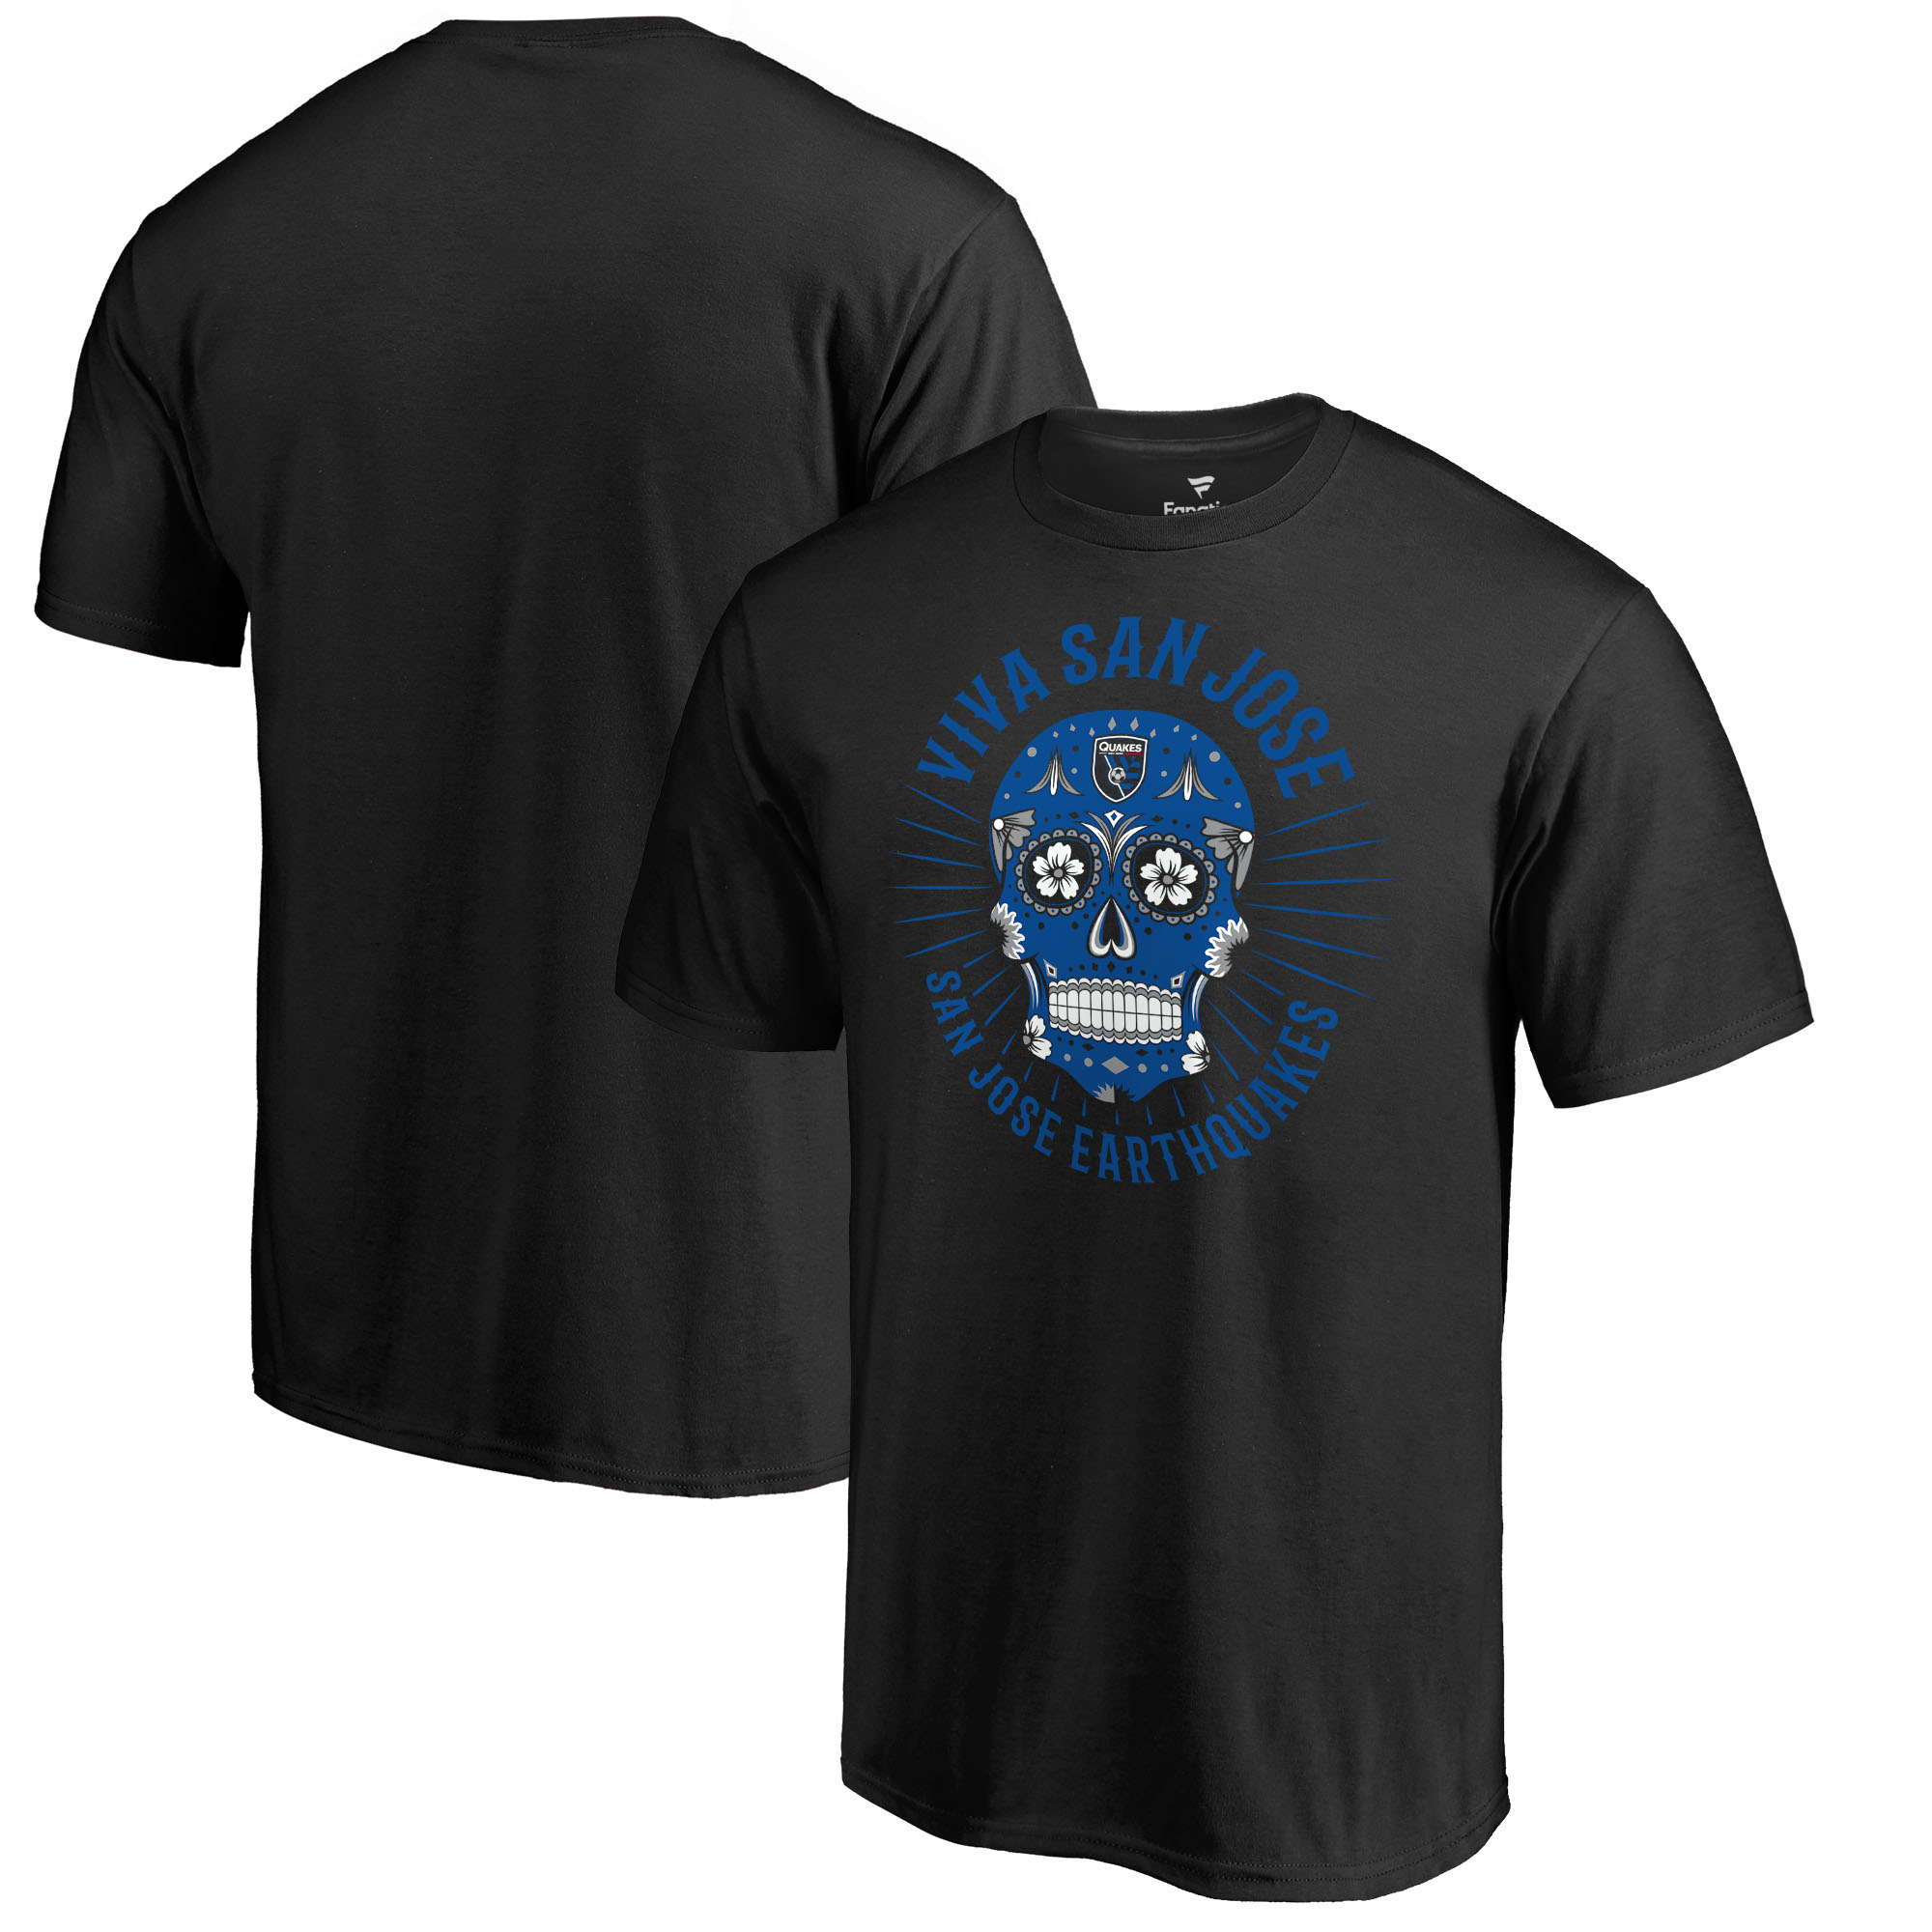 San Jose Earthquakes Fanatics Branded Hispanic Heritage Viva T-Shirt T-Shirt - Black